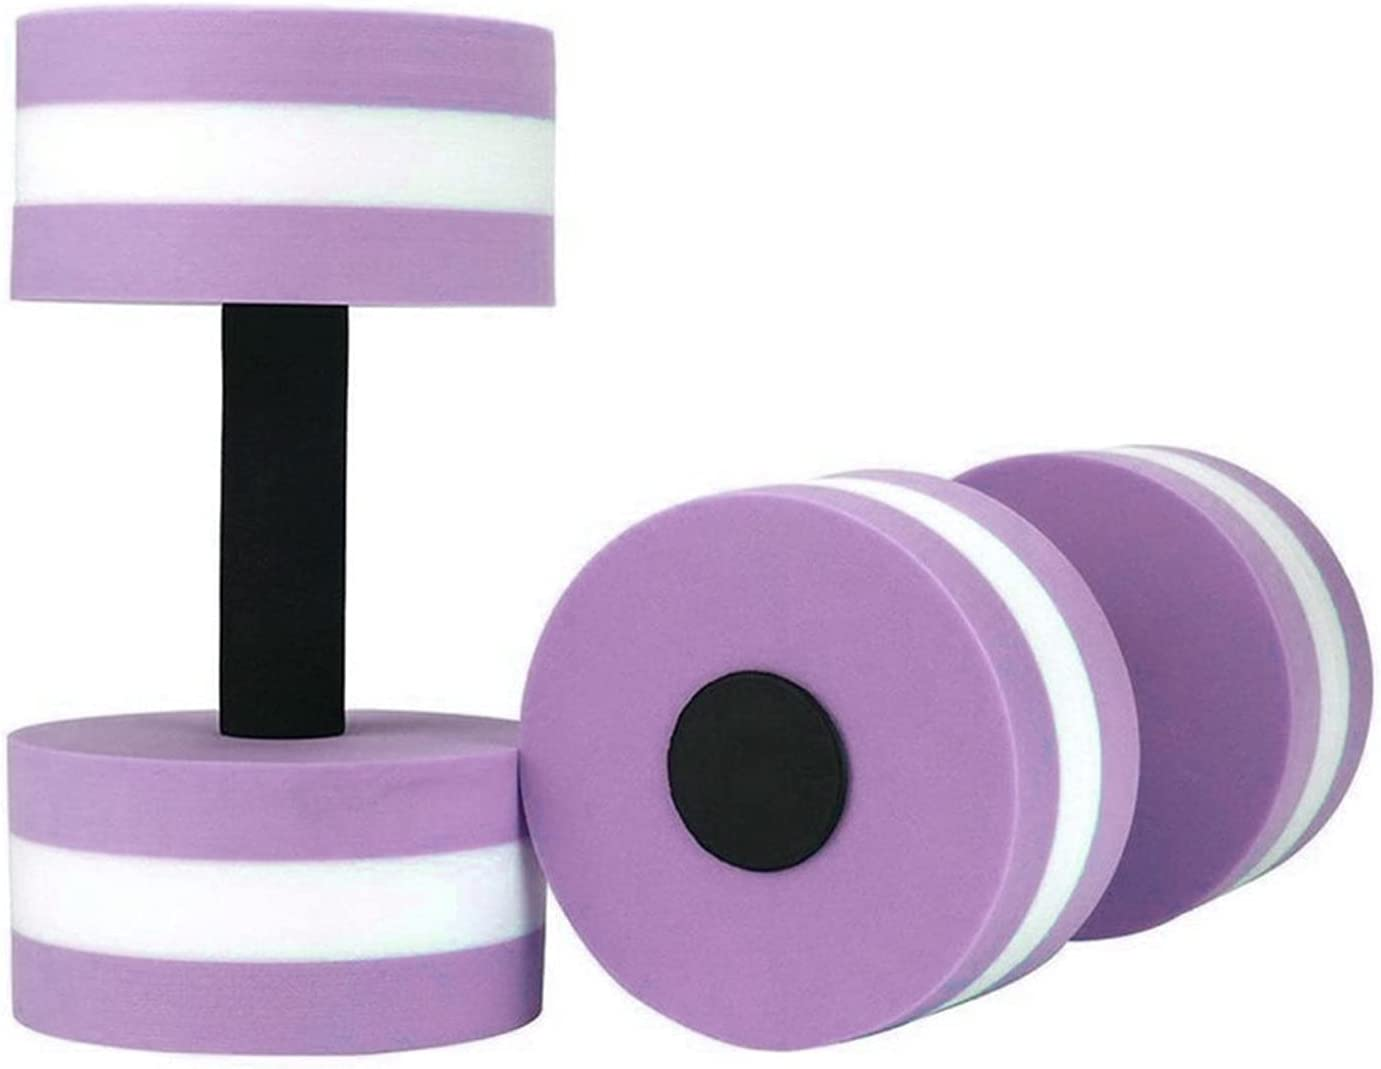 LJWWB Water Dumbbell Foam Floating Fitness Al sold Spring new work out. Pair 1